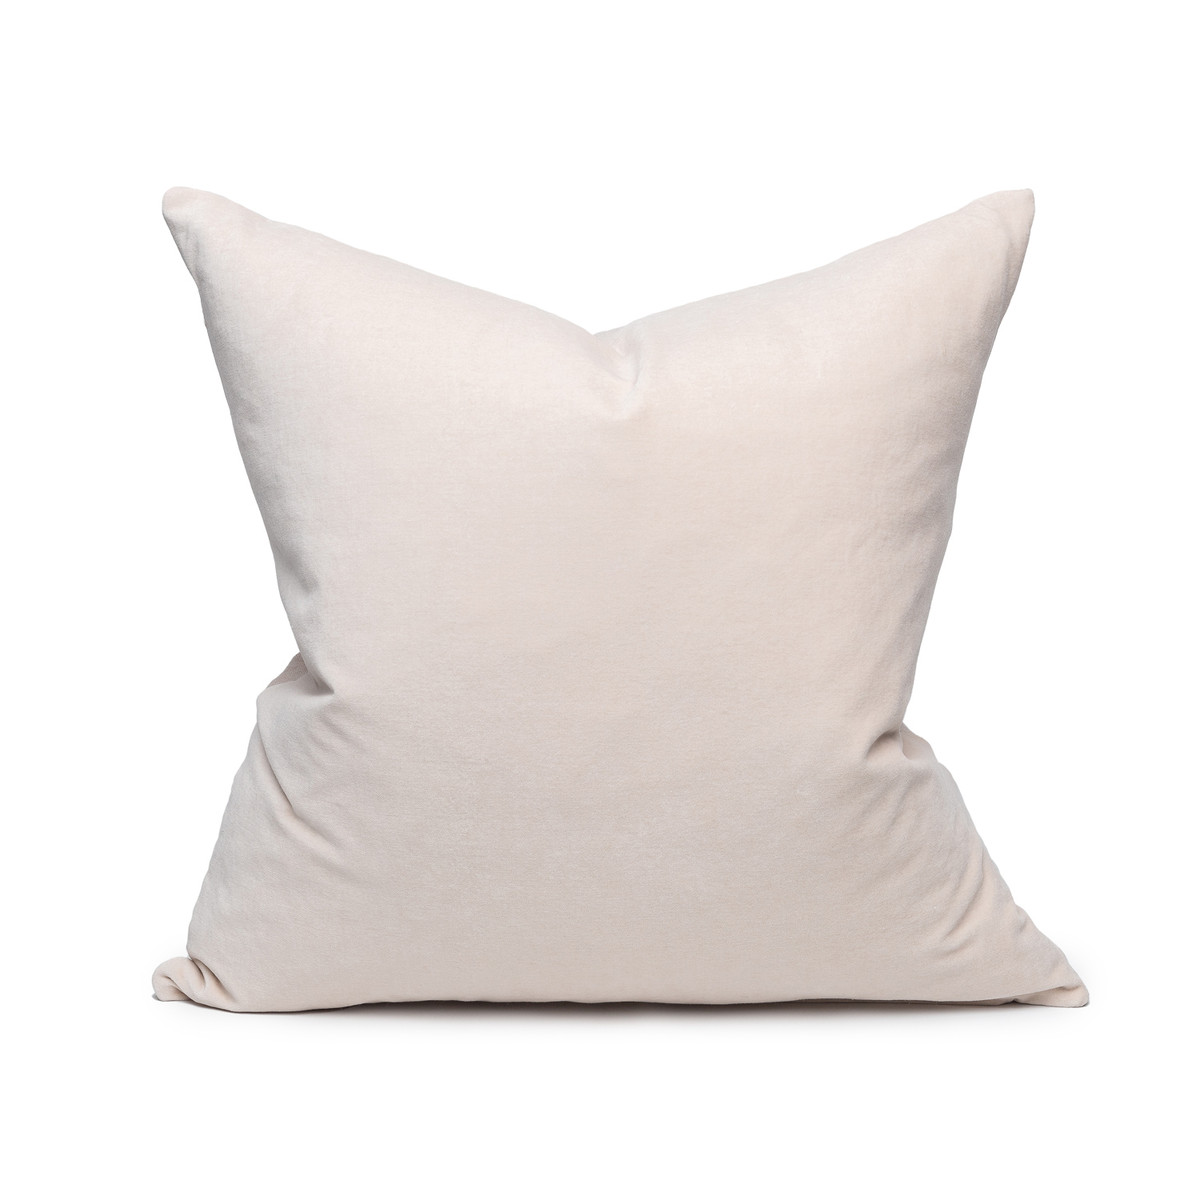 Sophie Blush Velvet decorative pillow - front